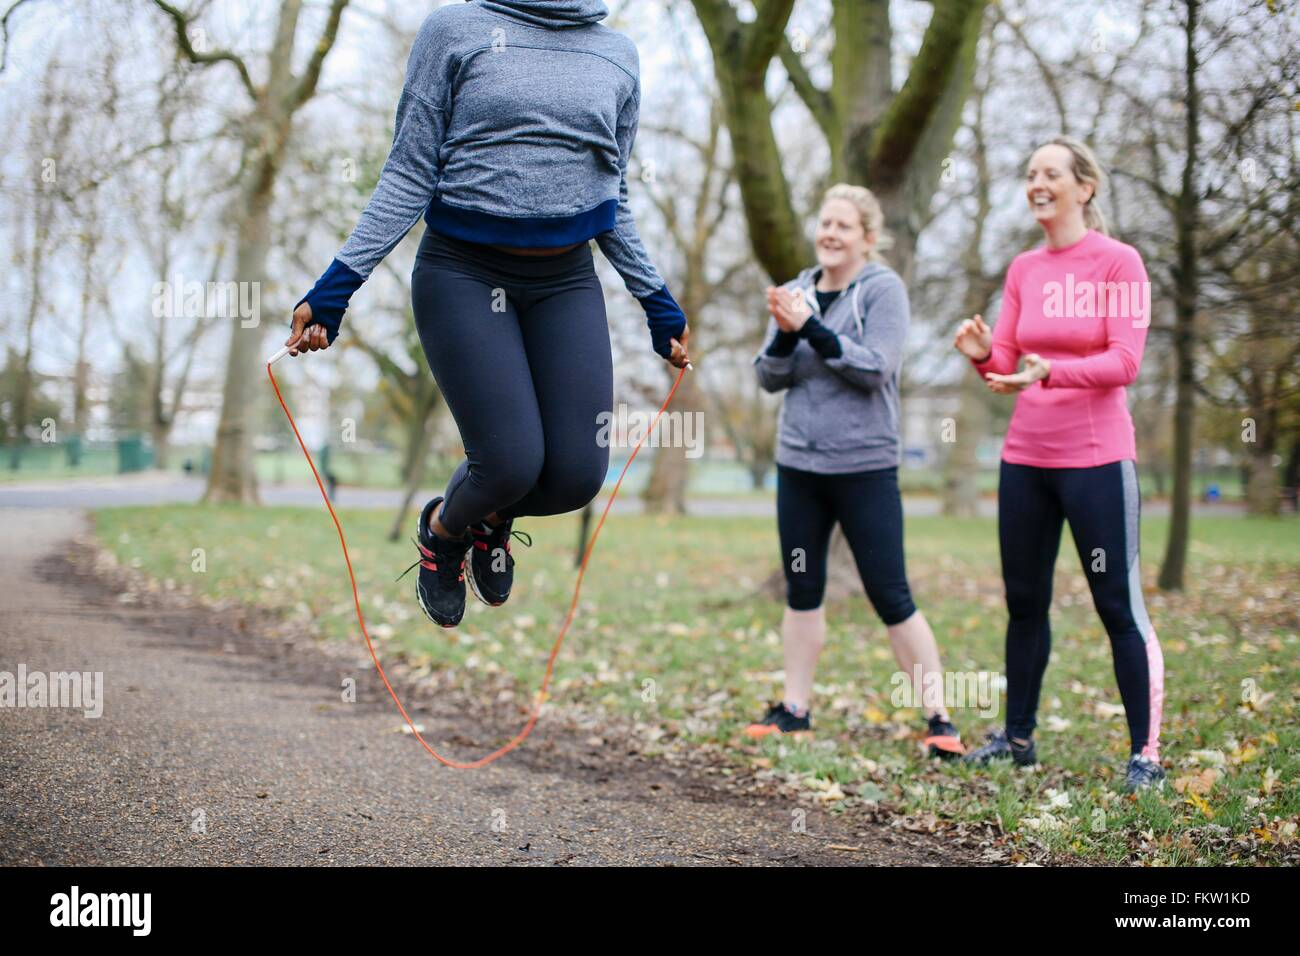 Cropped view of young woman and friends training with skipping rope in park - Stock Image